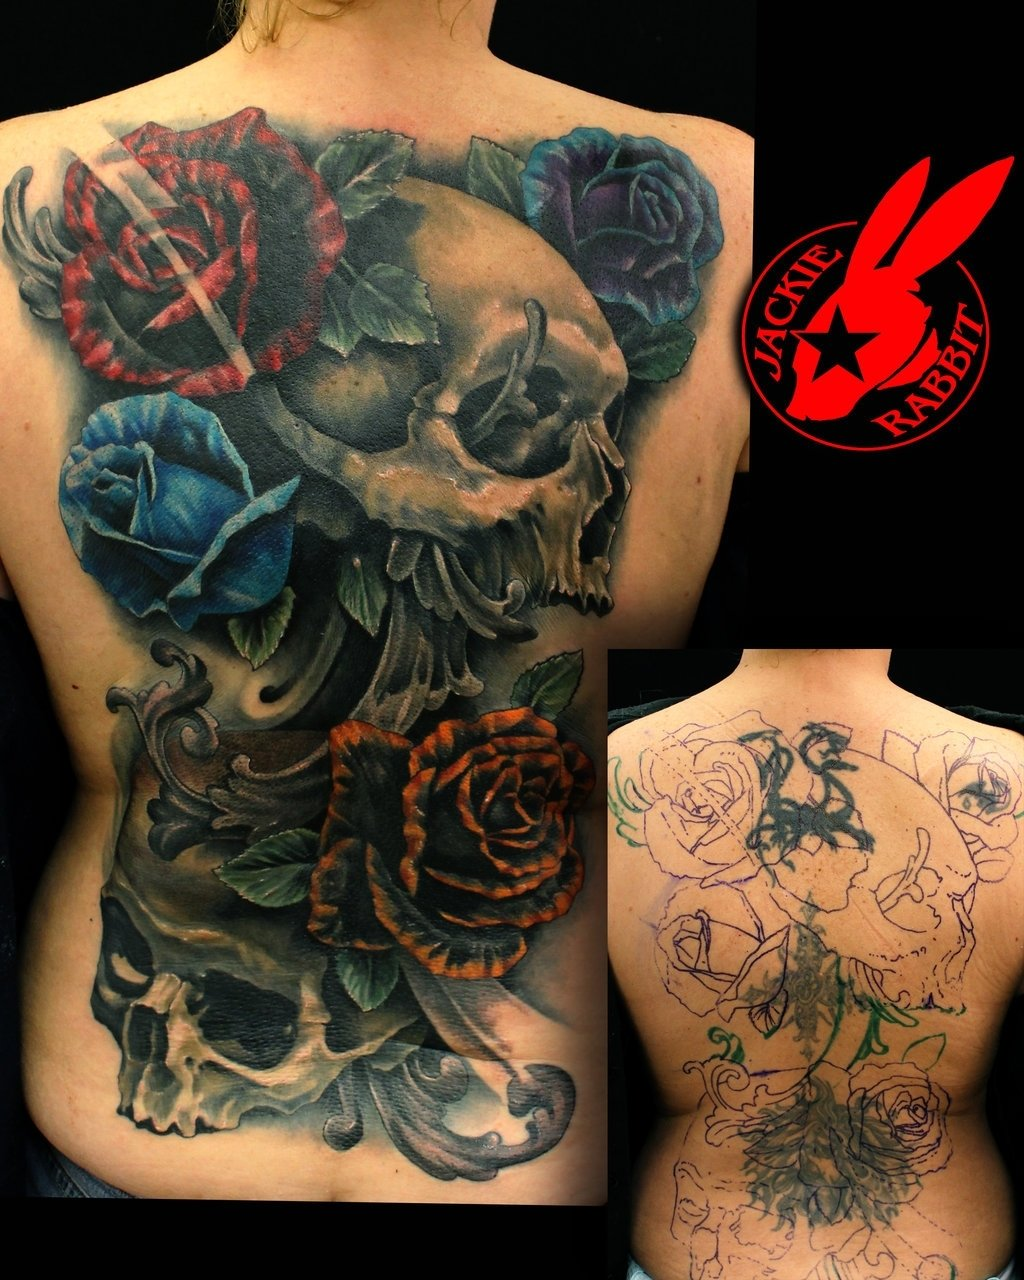 10 Cute Back Tattoo Cover Up Ideas skull roses back cover up tattoojackie rabbitjackierabbit12 2020